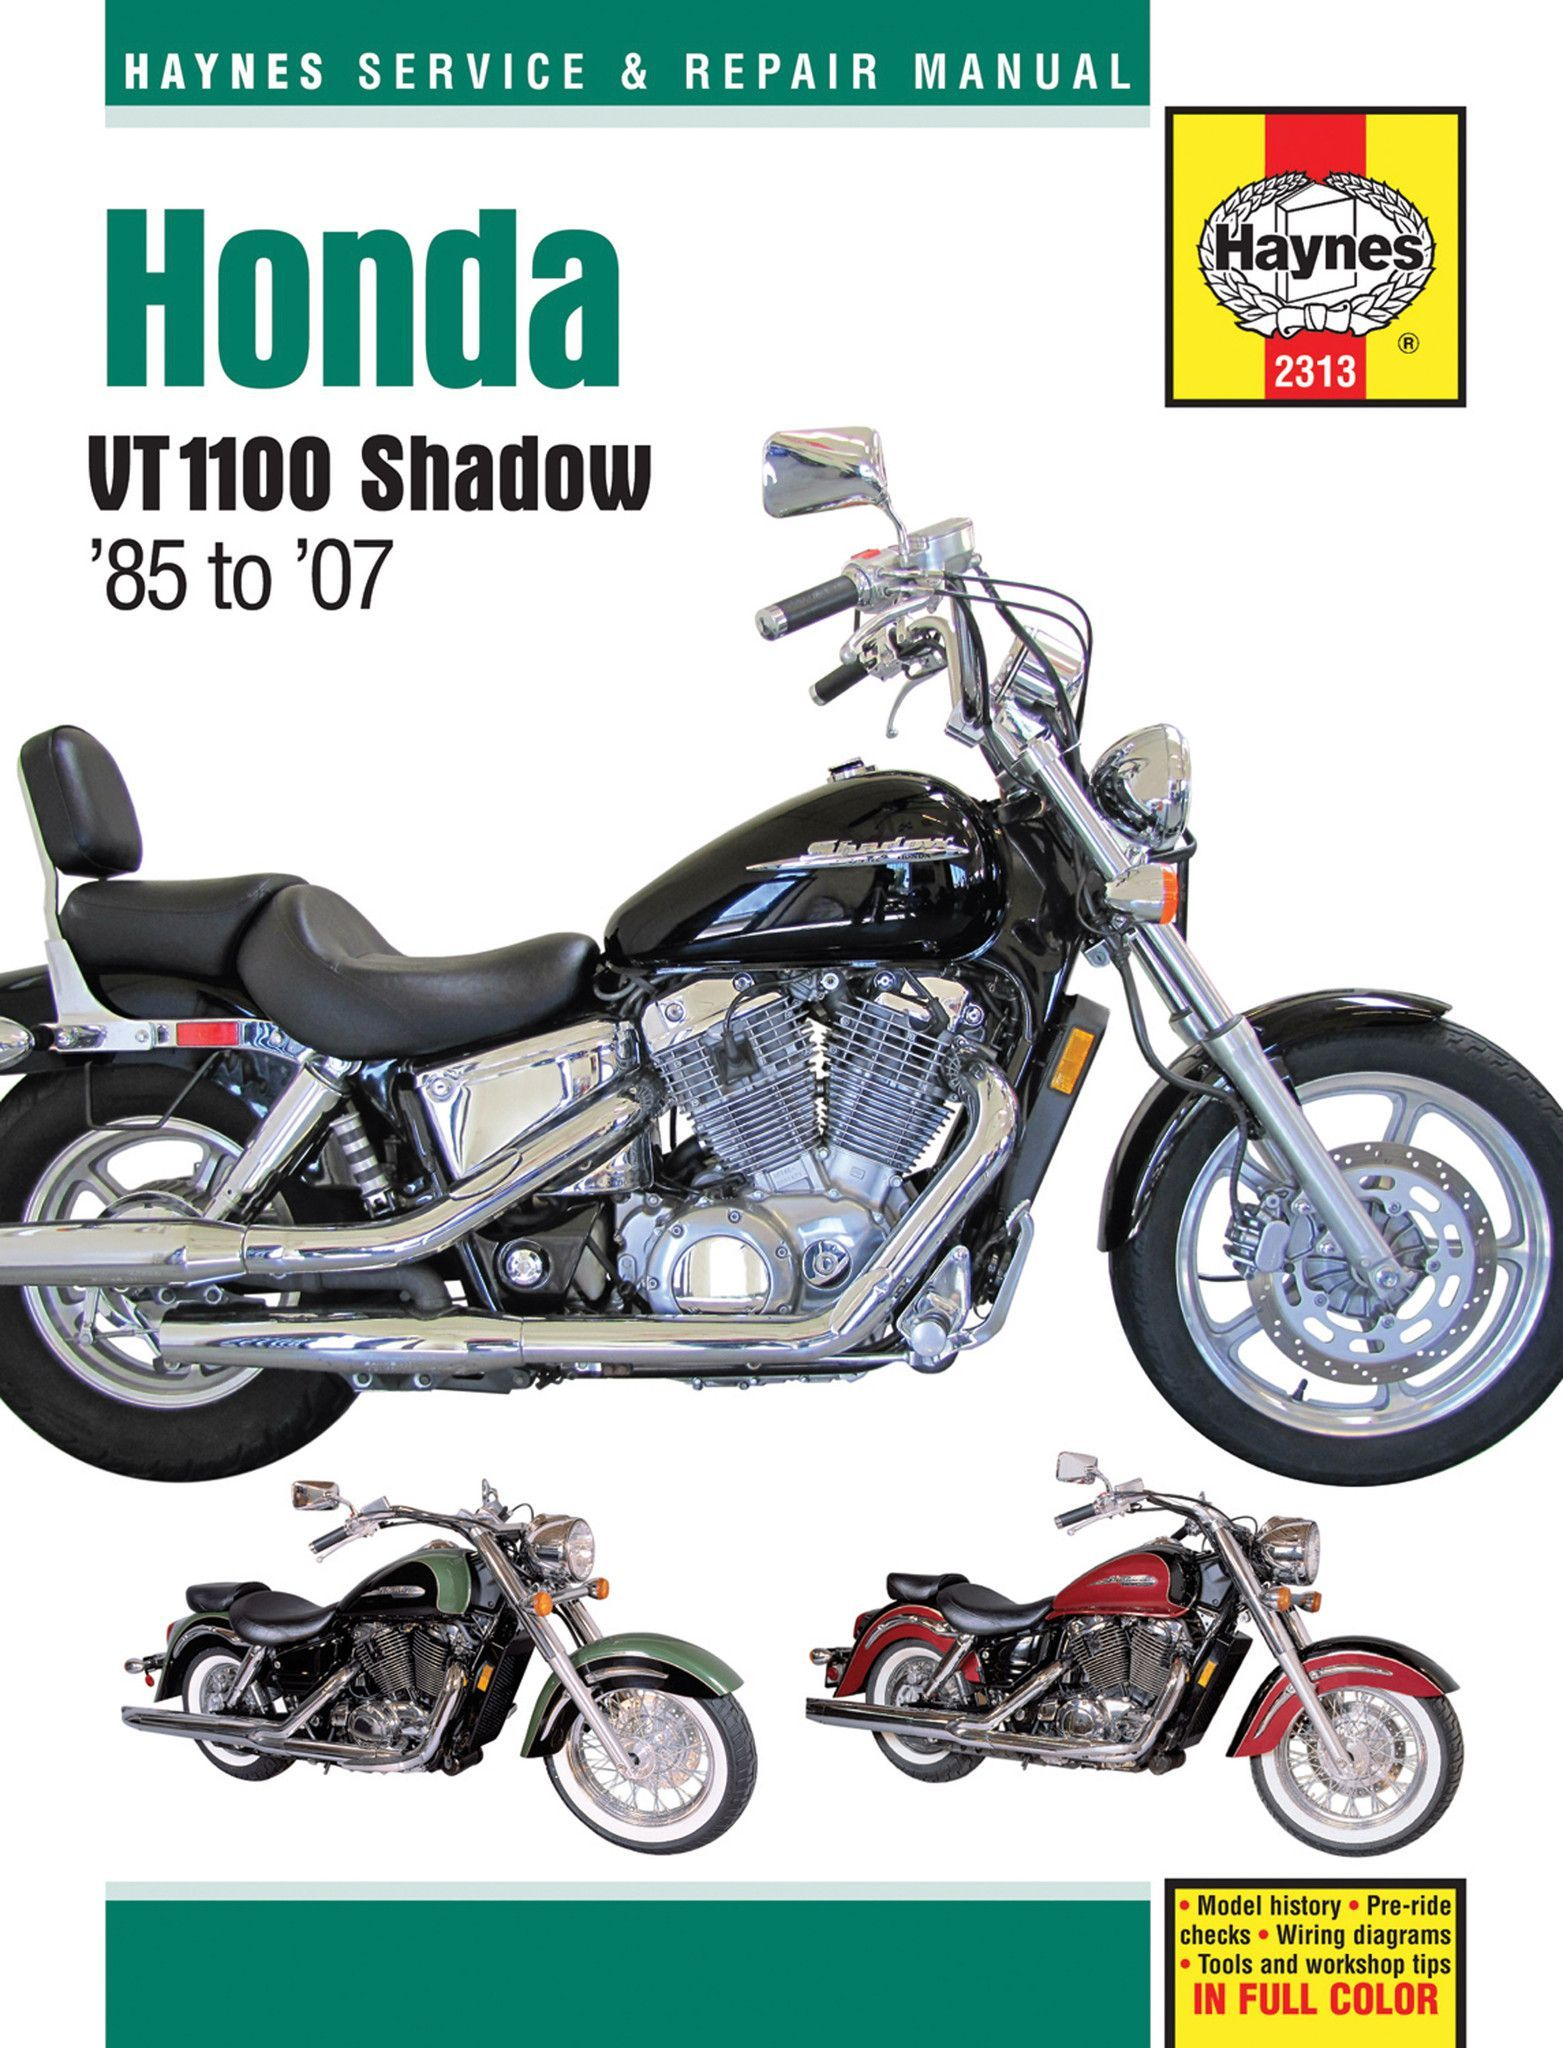 b548c75714cab9818af677b5f1a70187 haynes m2313 service & repair manual for 1985 07 honda shadow  at fashall.co